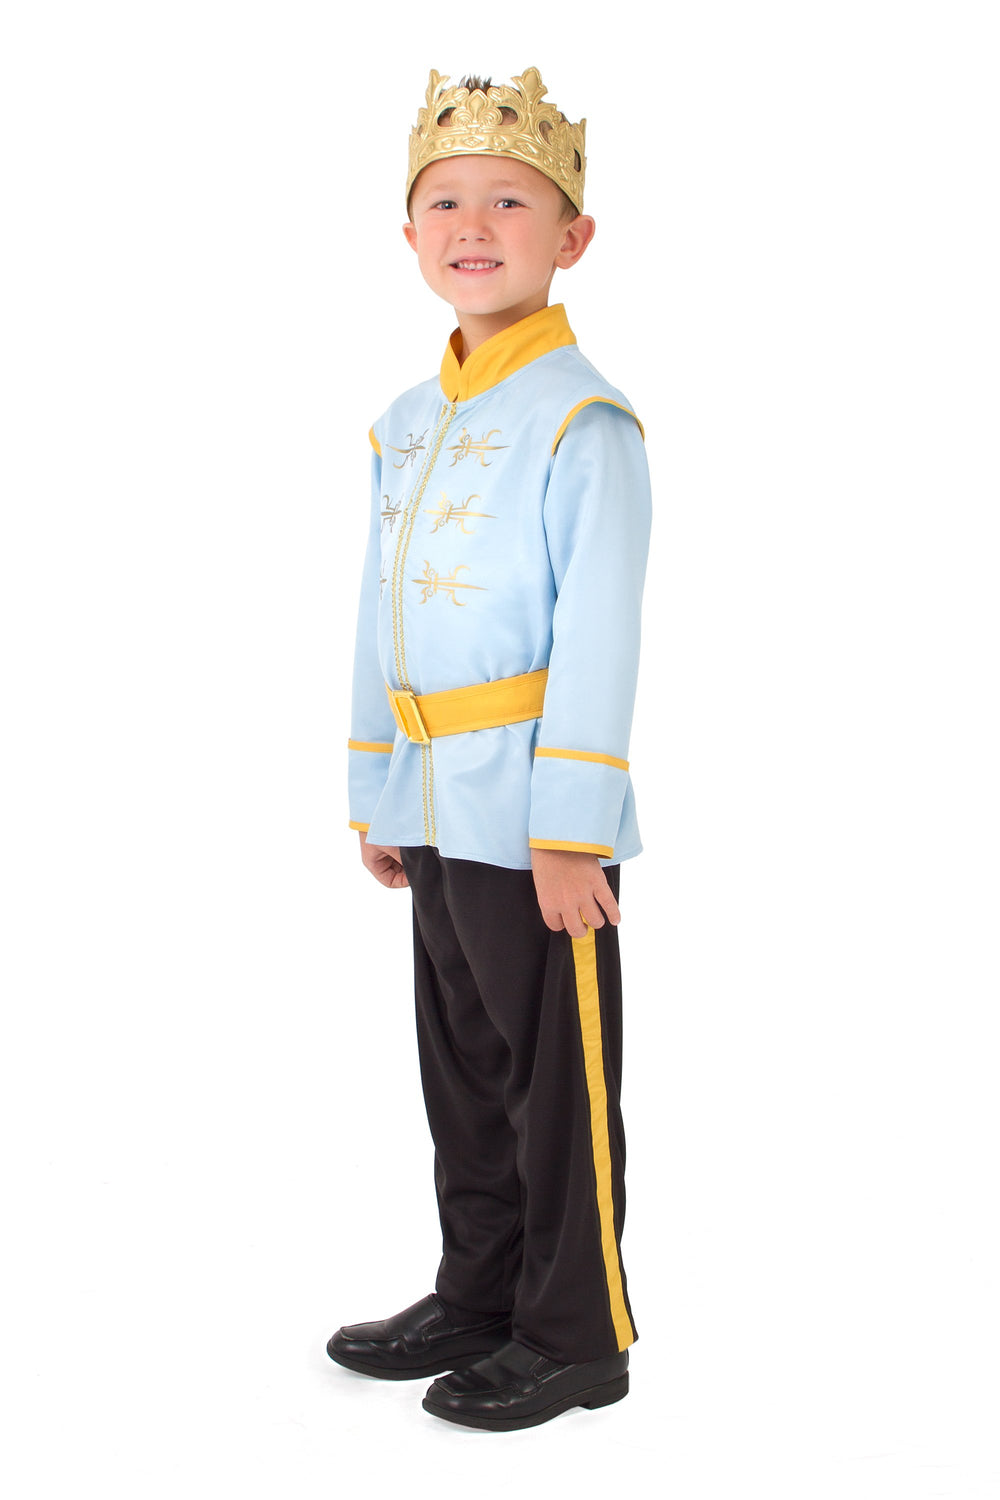 Prince charming costume for boys